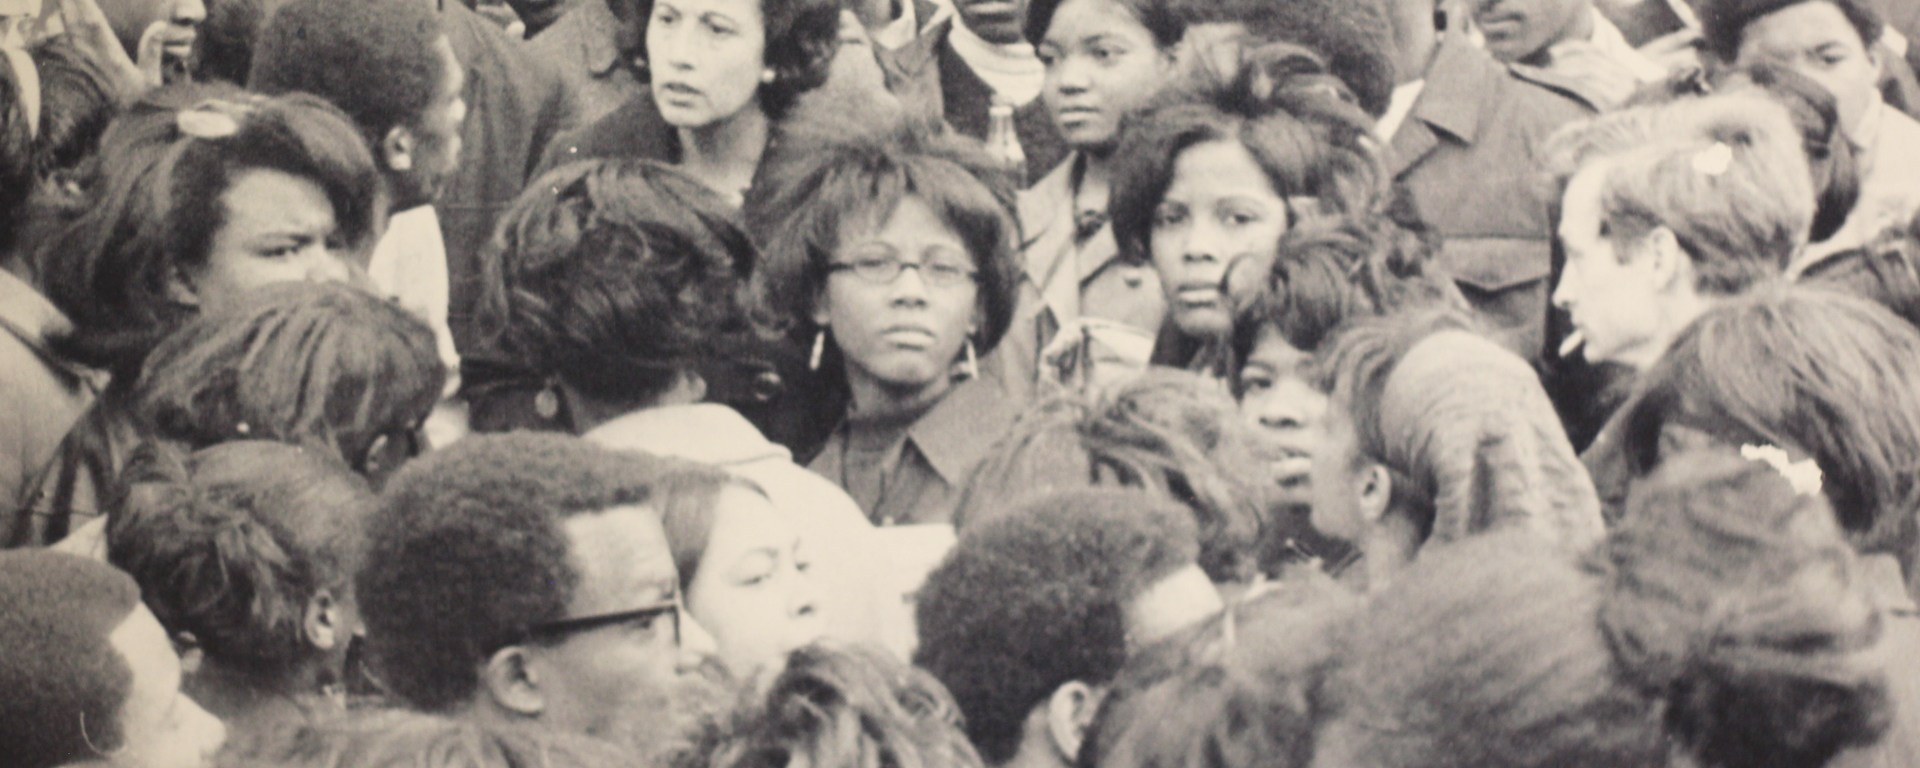 Civil Rights History Exhibit At Goodwin College